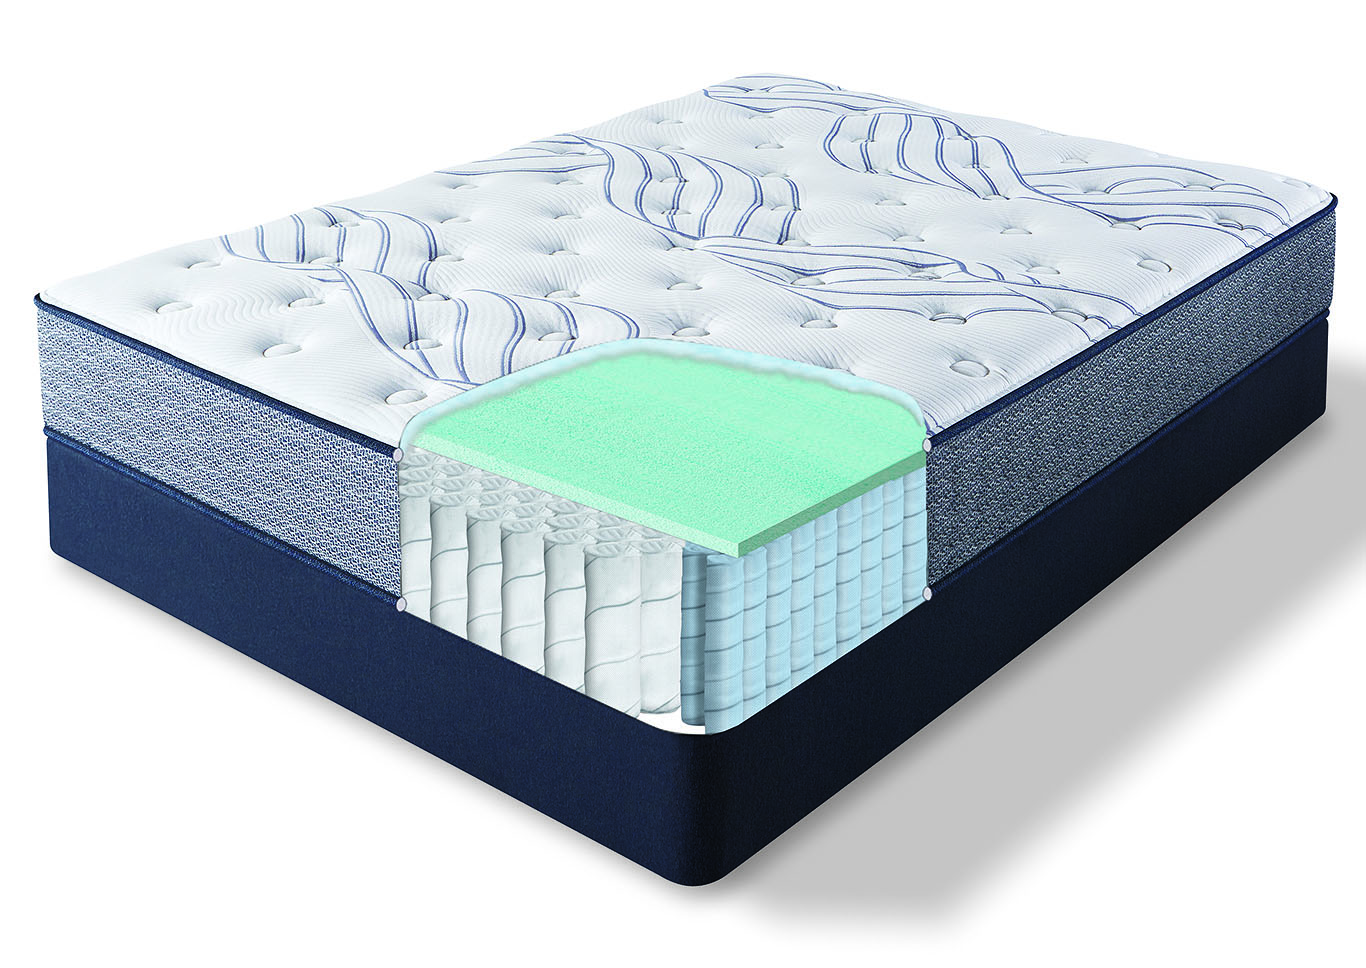 Kleinmon II Plush Twin XL Mattress,Huffman Koos